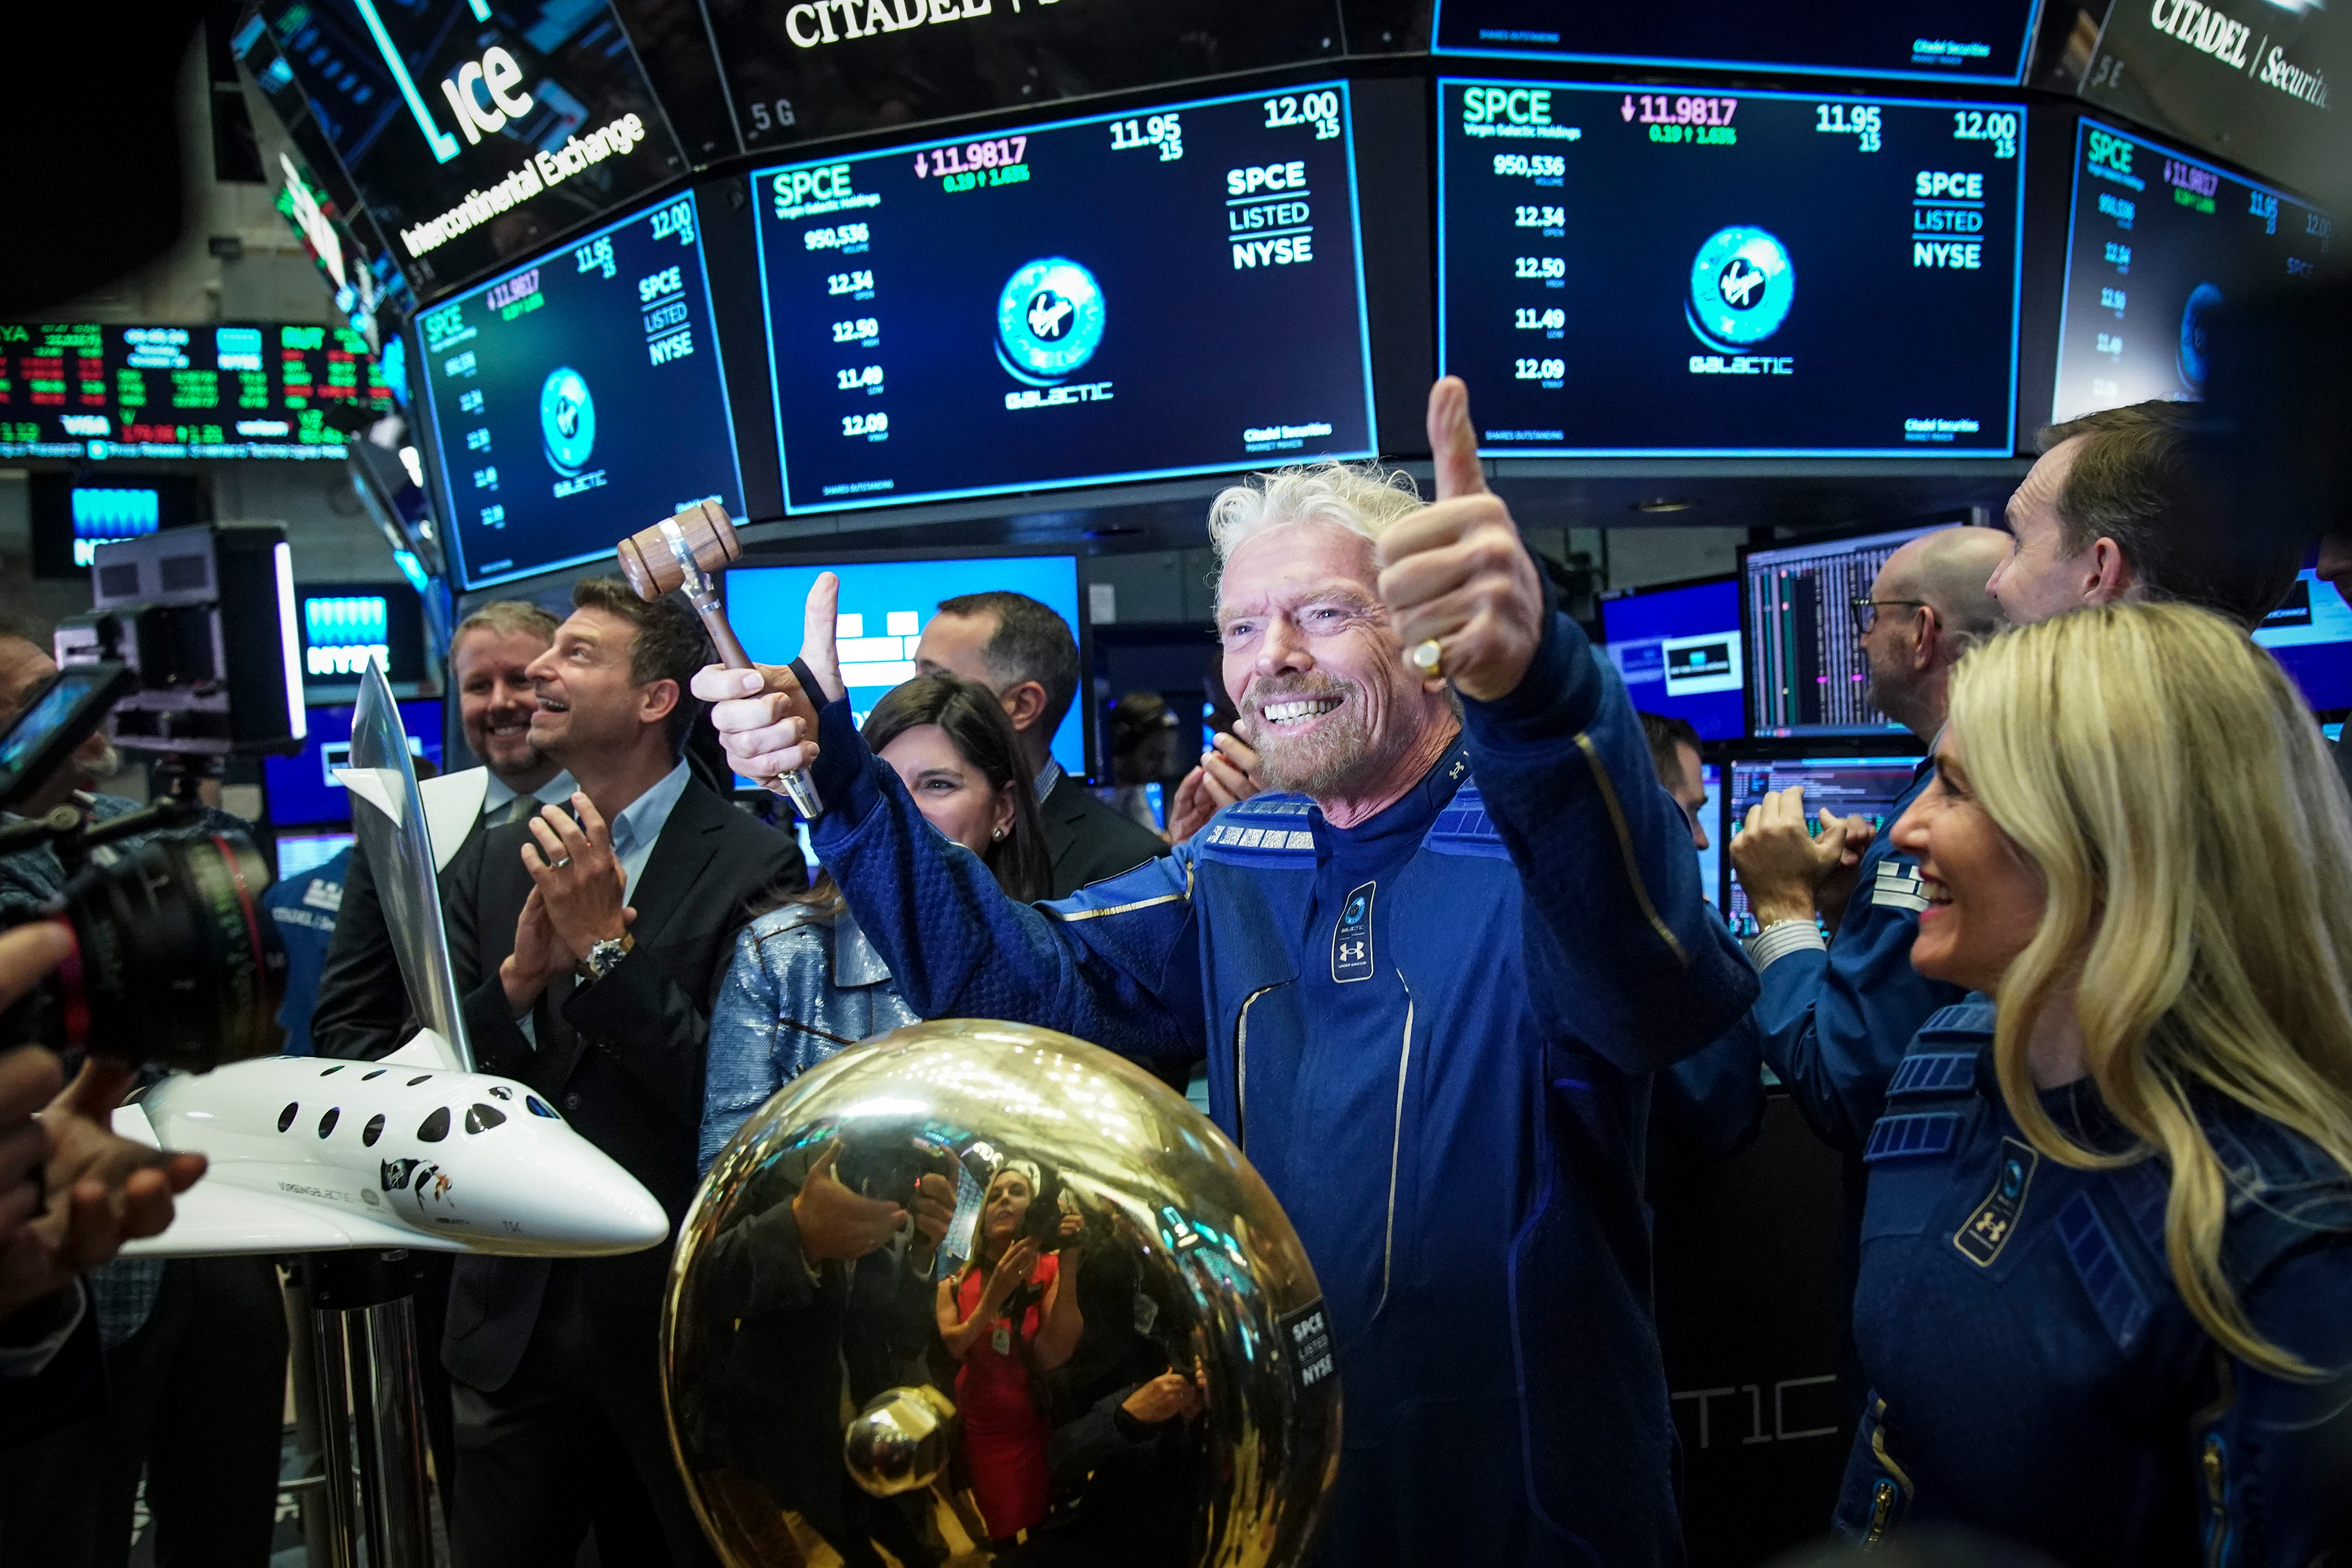 IPOs are SO 2019. Companies are finding new ways to go public